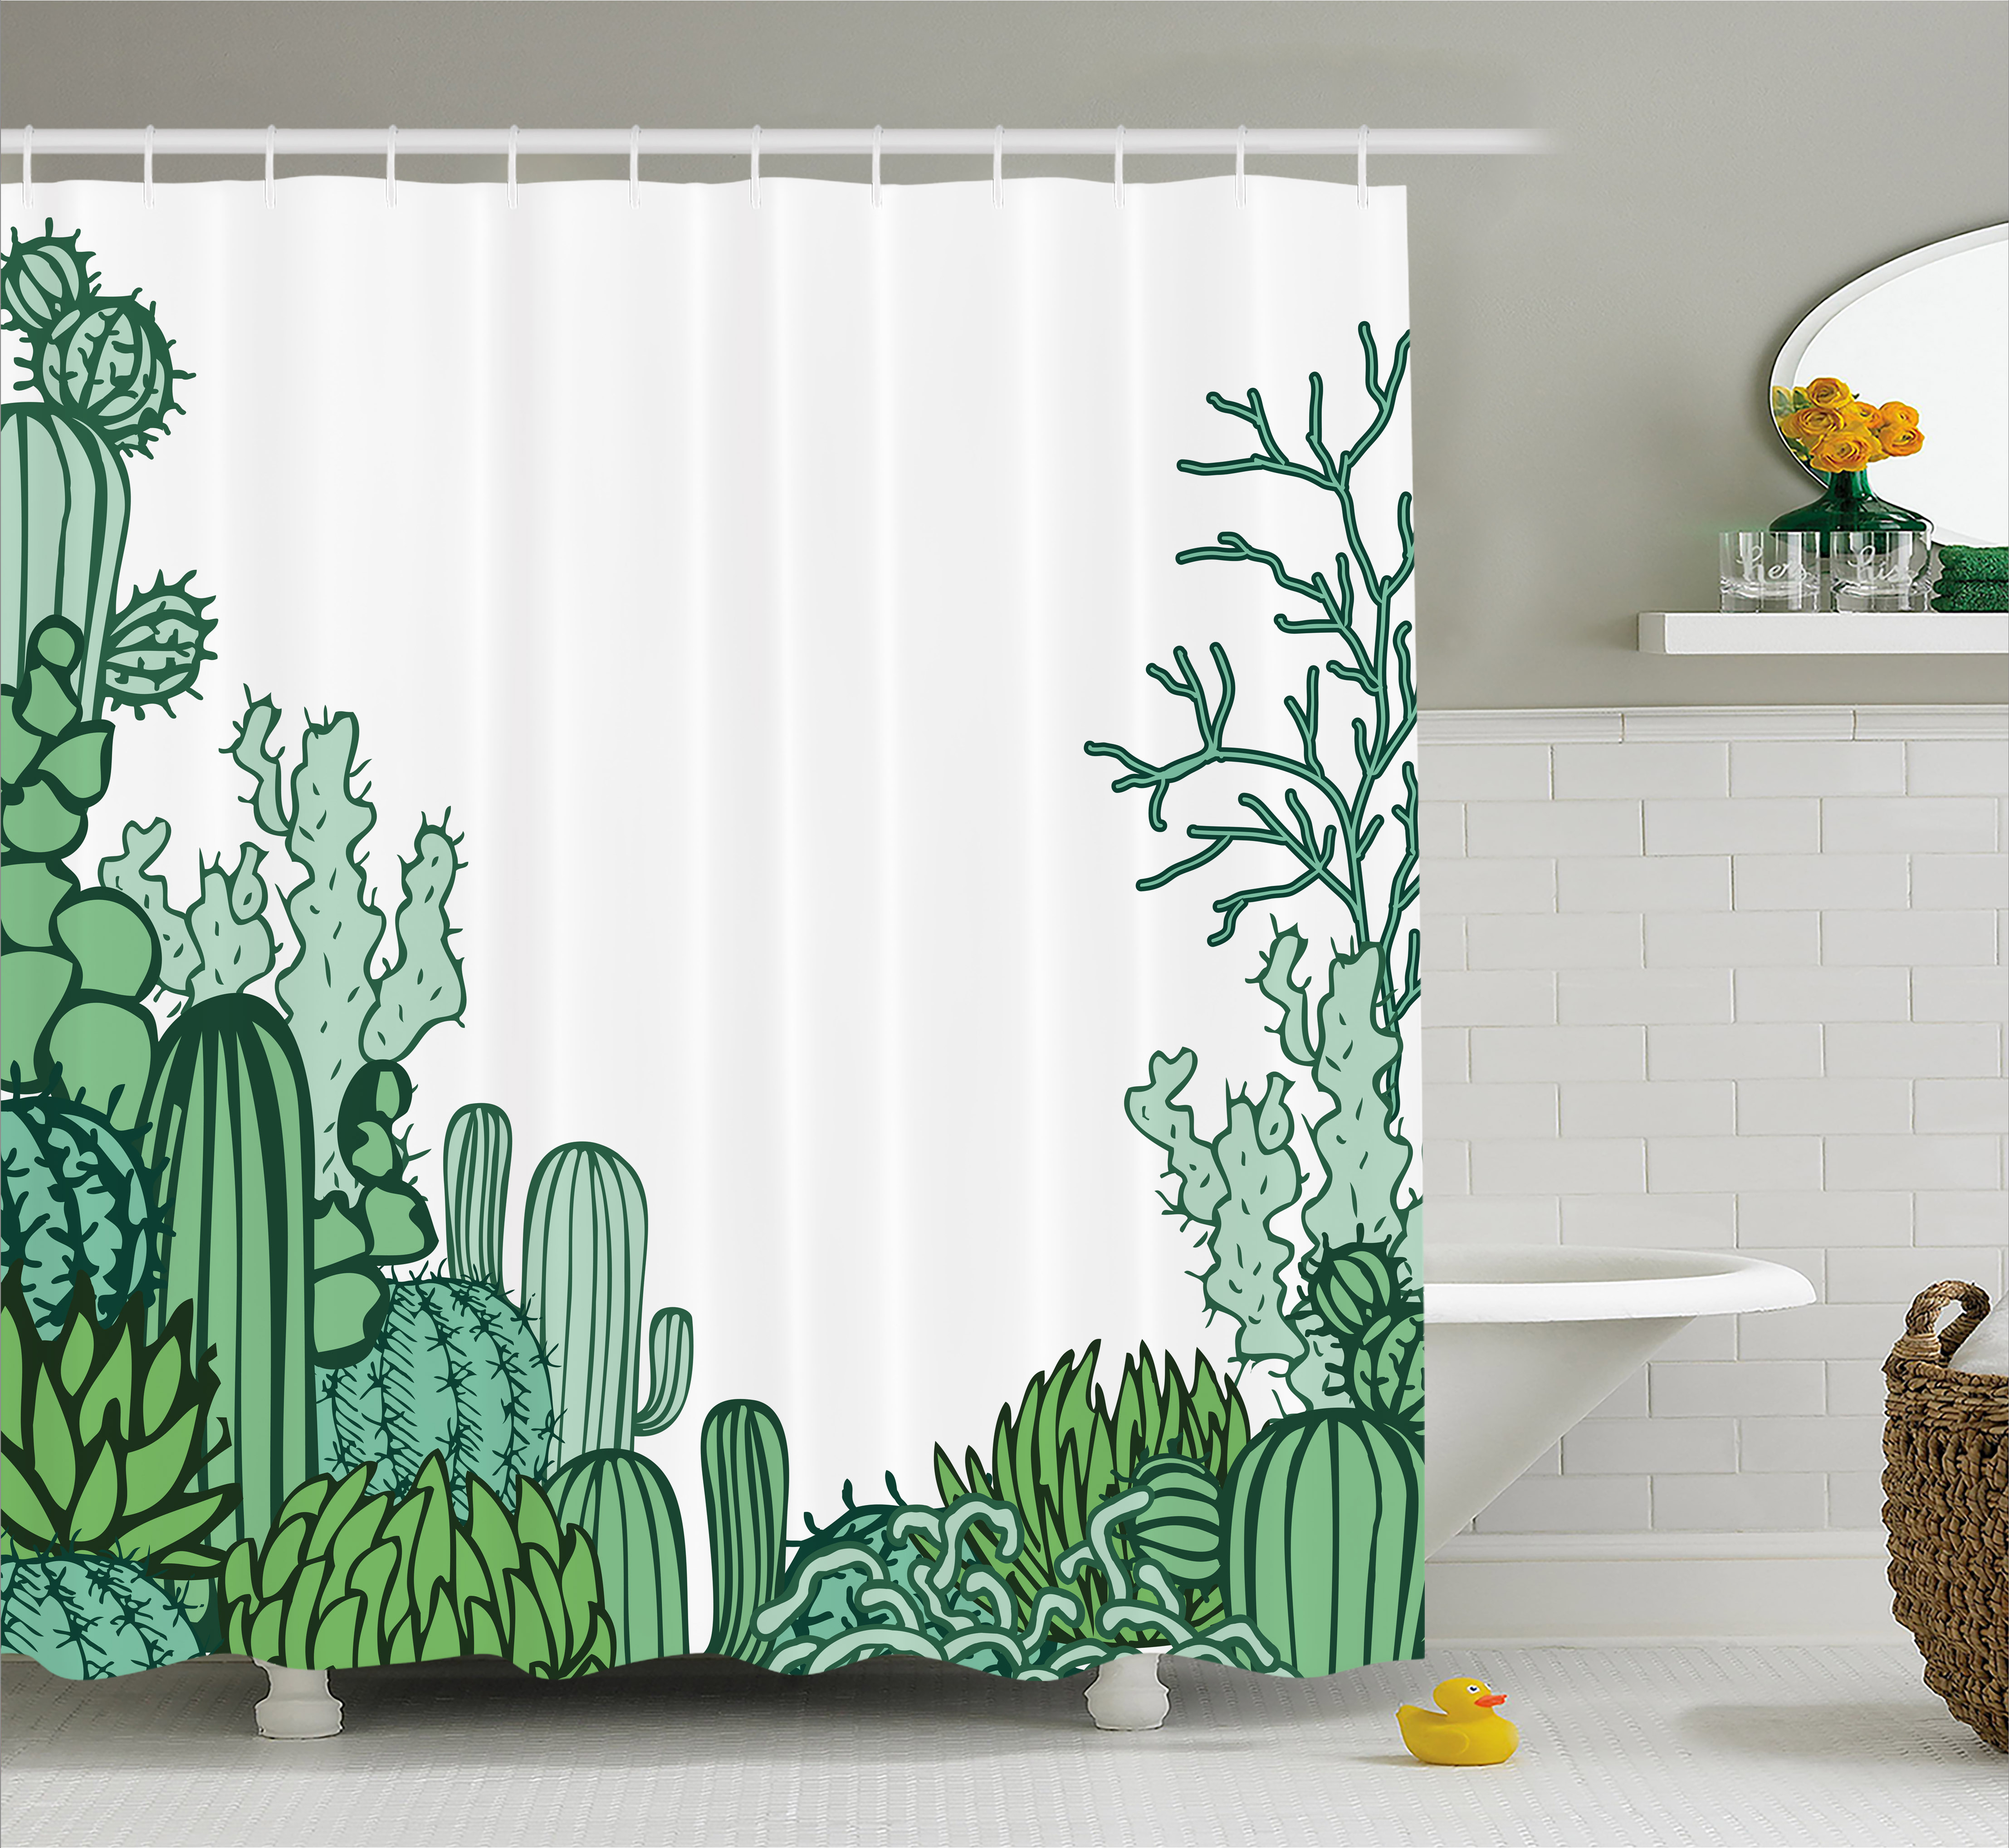 Cactus Shower Curtain Arizona Desert Themed Doodle Staghorn Buckhorn Ocotillo Plants Fabric Bathroom Set With Hooks Green Pale Seafoam